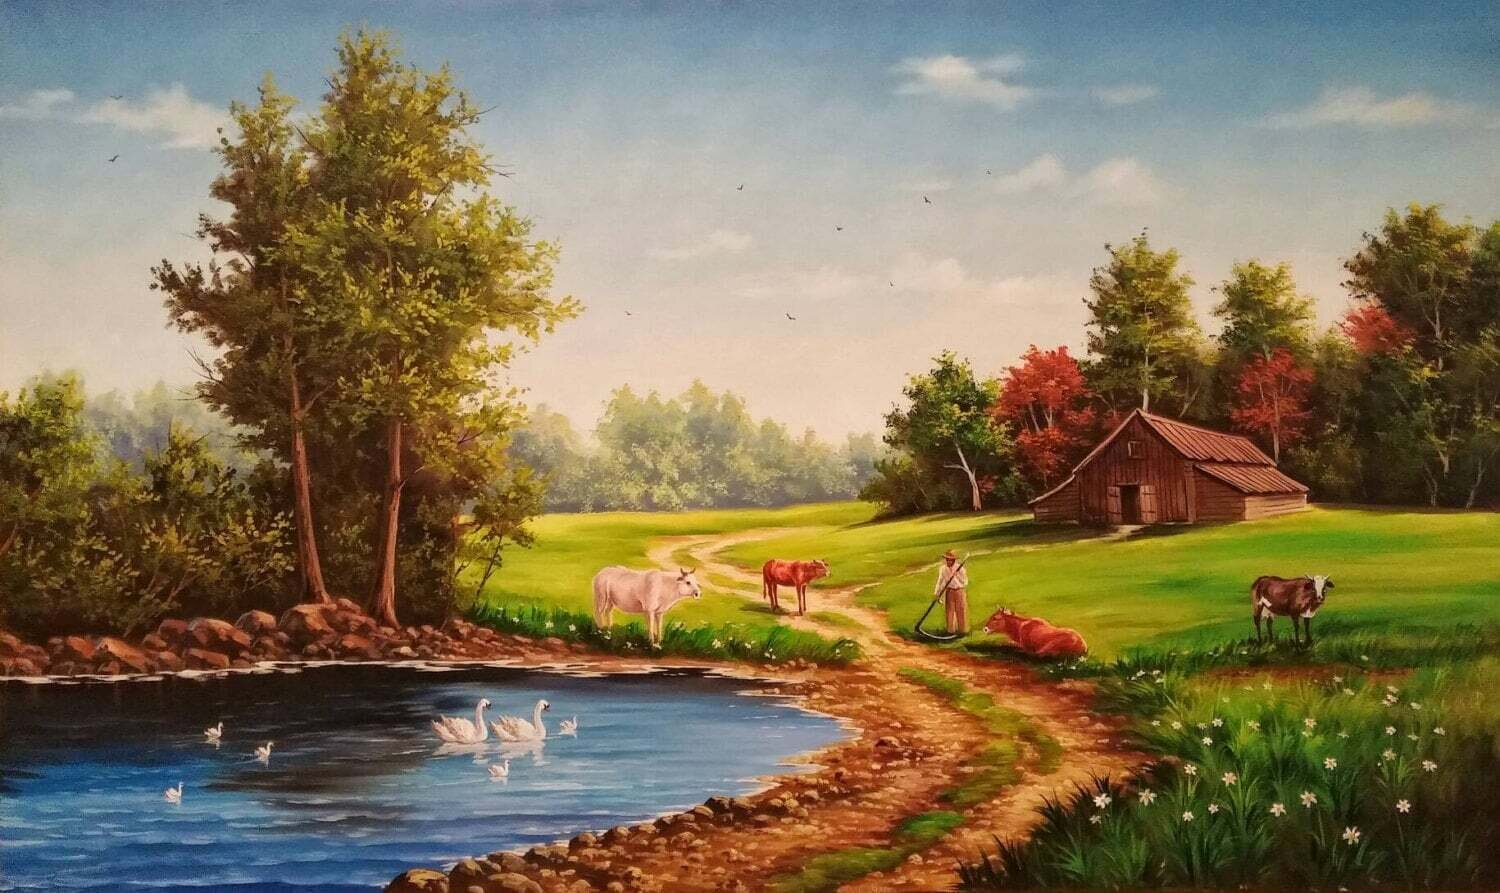 The Perfect Farm OIL PAINTING on canvas. Wall Art. Home Decor. Landscape Painting. Fine Art. Hand Painted Original